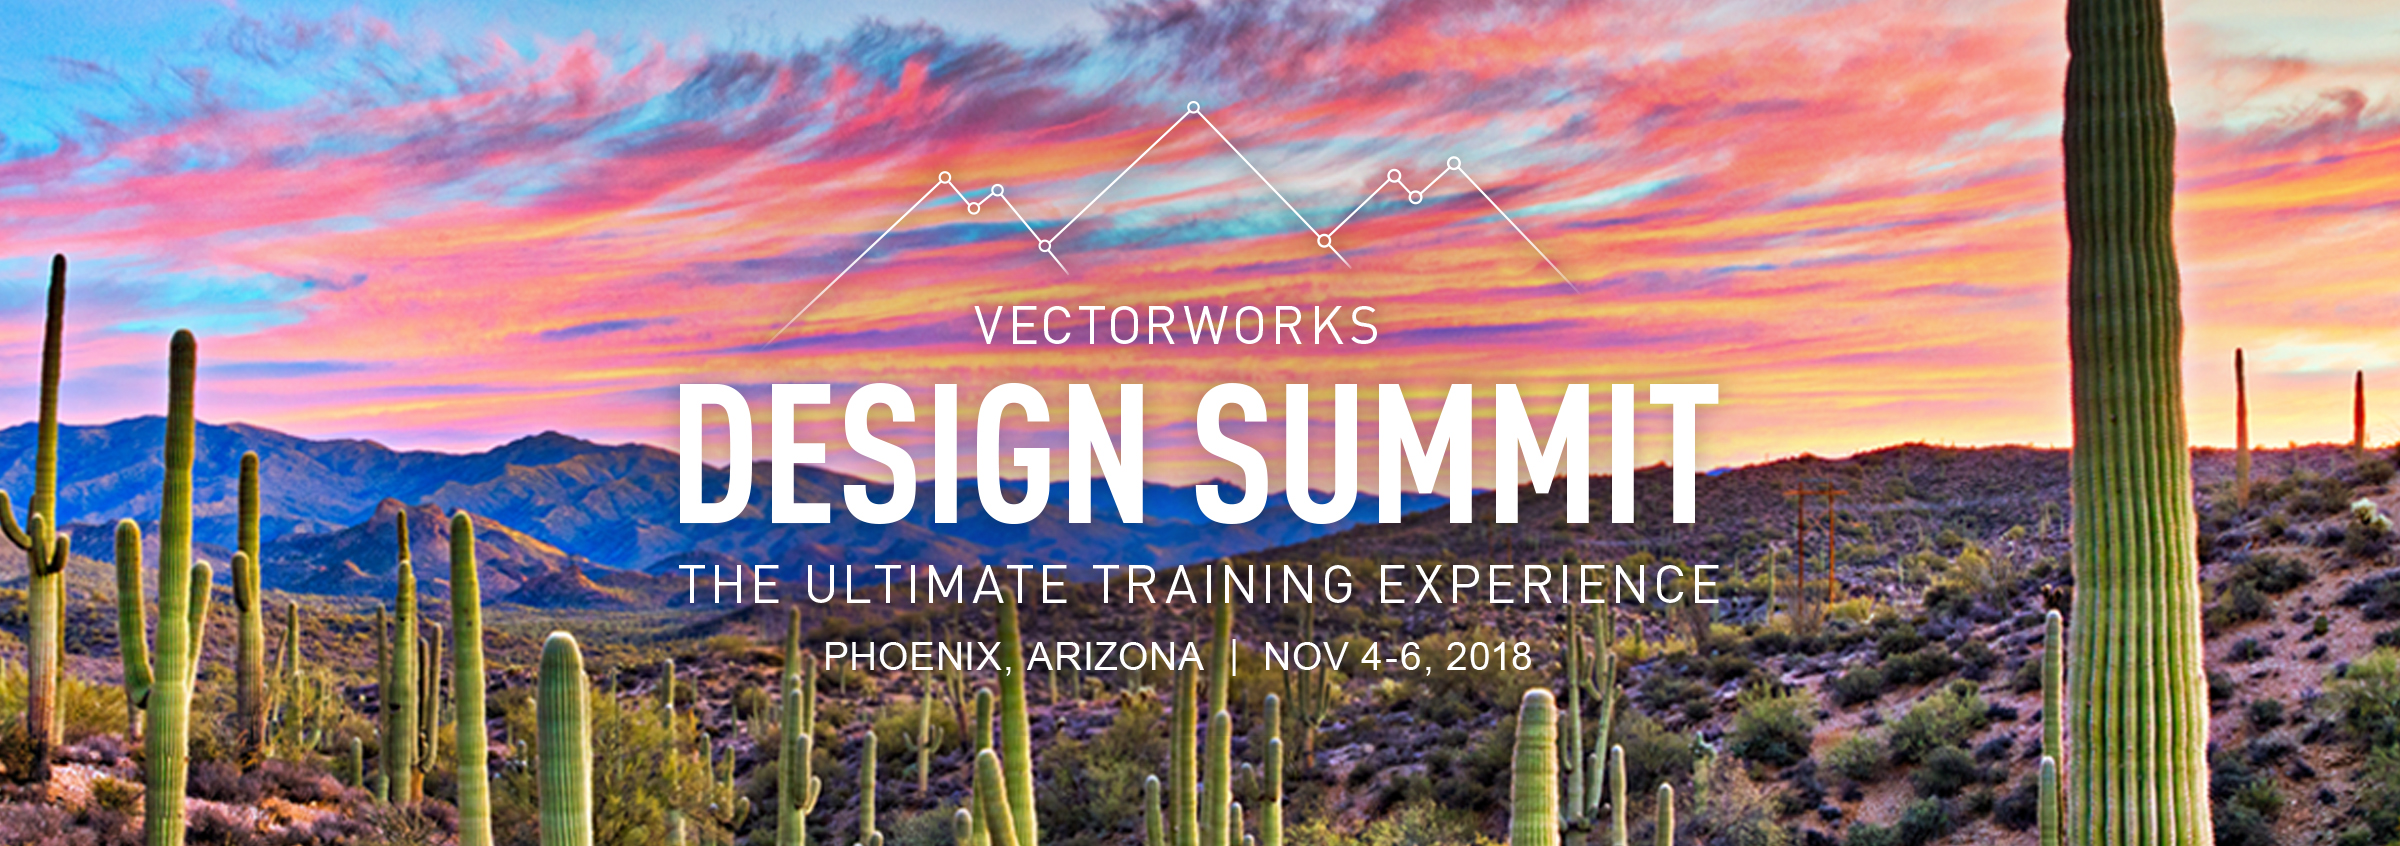 Vectorworks Design Summit | November 4-6, 2018 | Phoenix, AZ